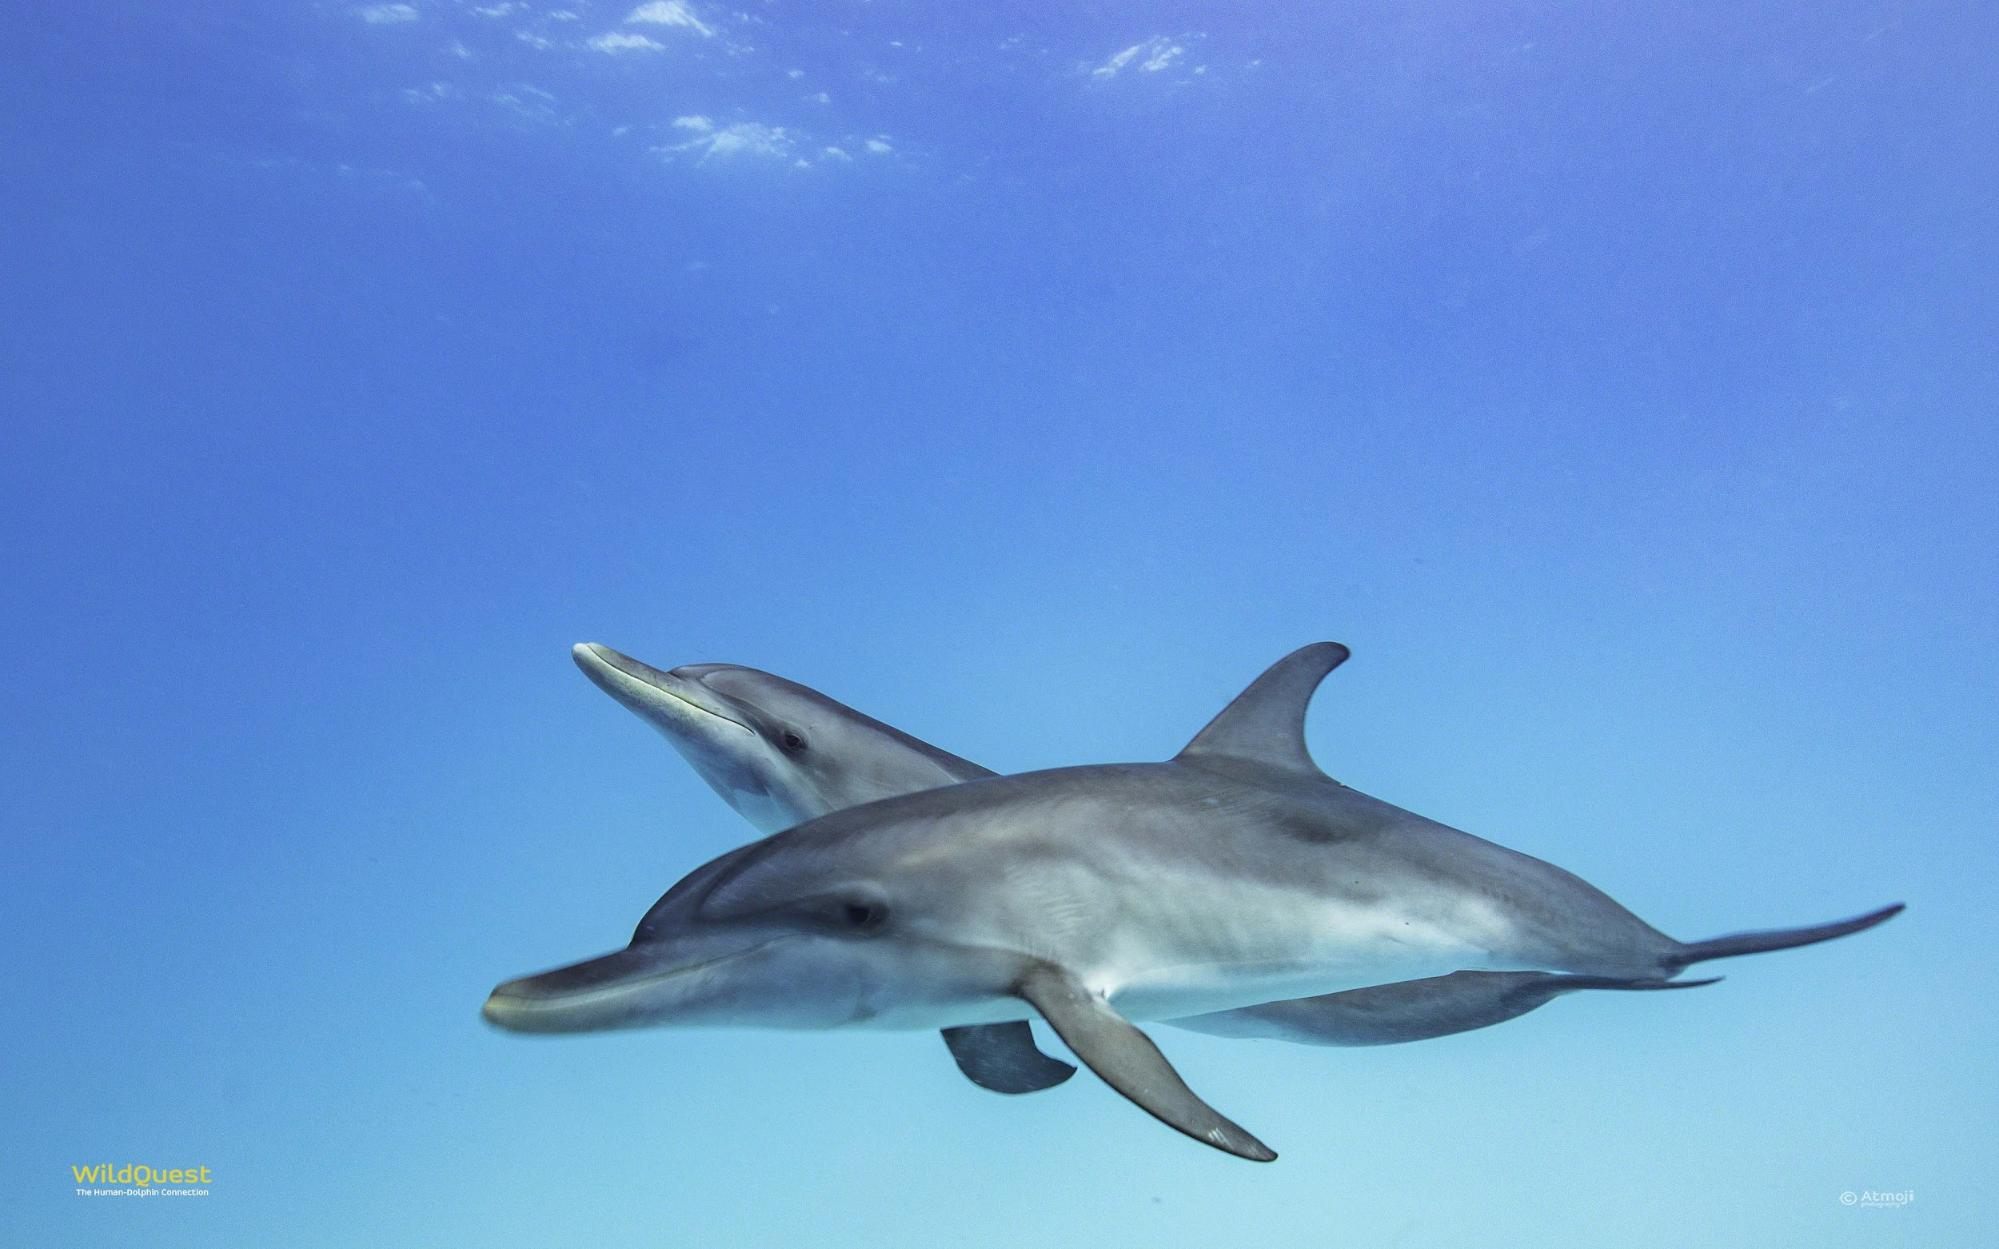 Image credit: Atmoji at Wild Quest, where I learned how to care for my human pod as well as the beauty of wild dolphins.